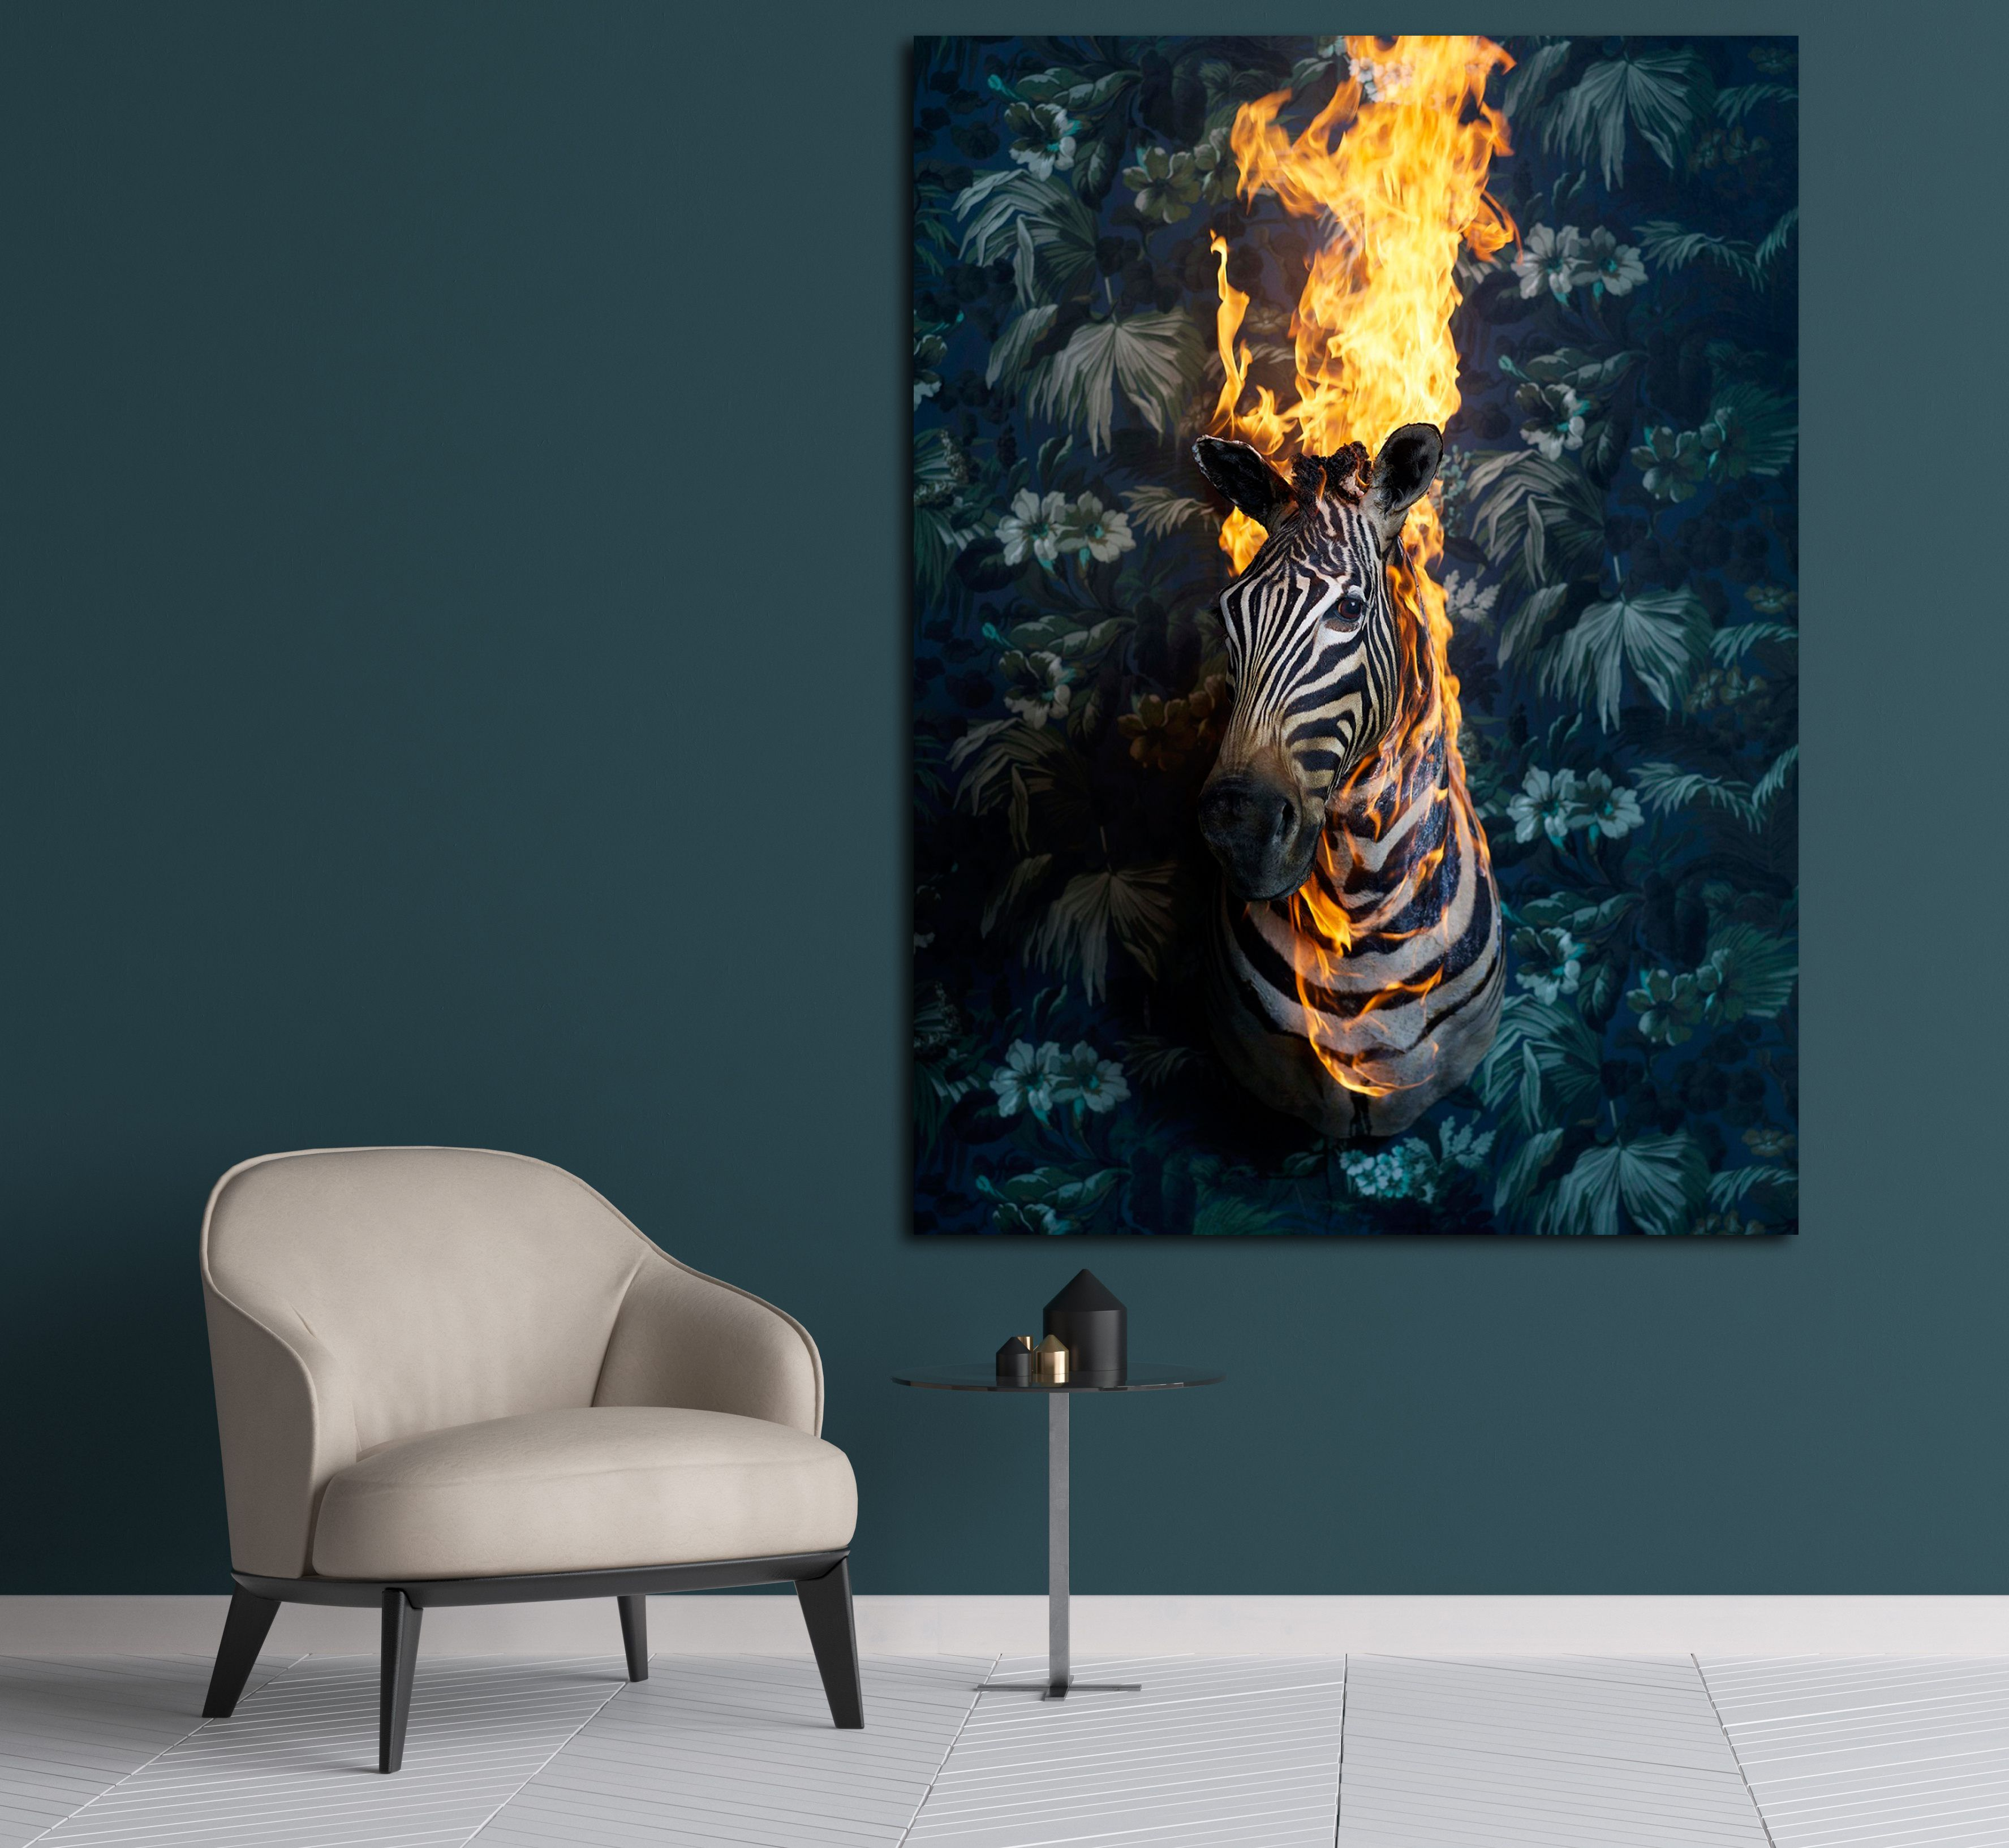 Zebra, Residence of Impermanence series - Christian Houge - Photography - detail 2